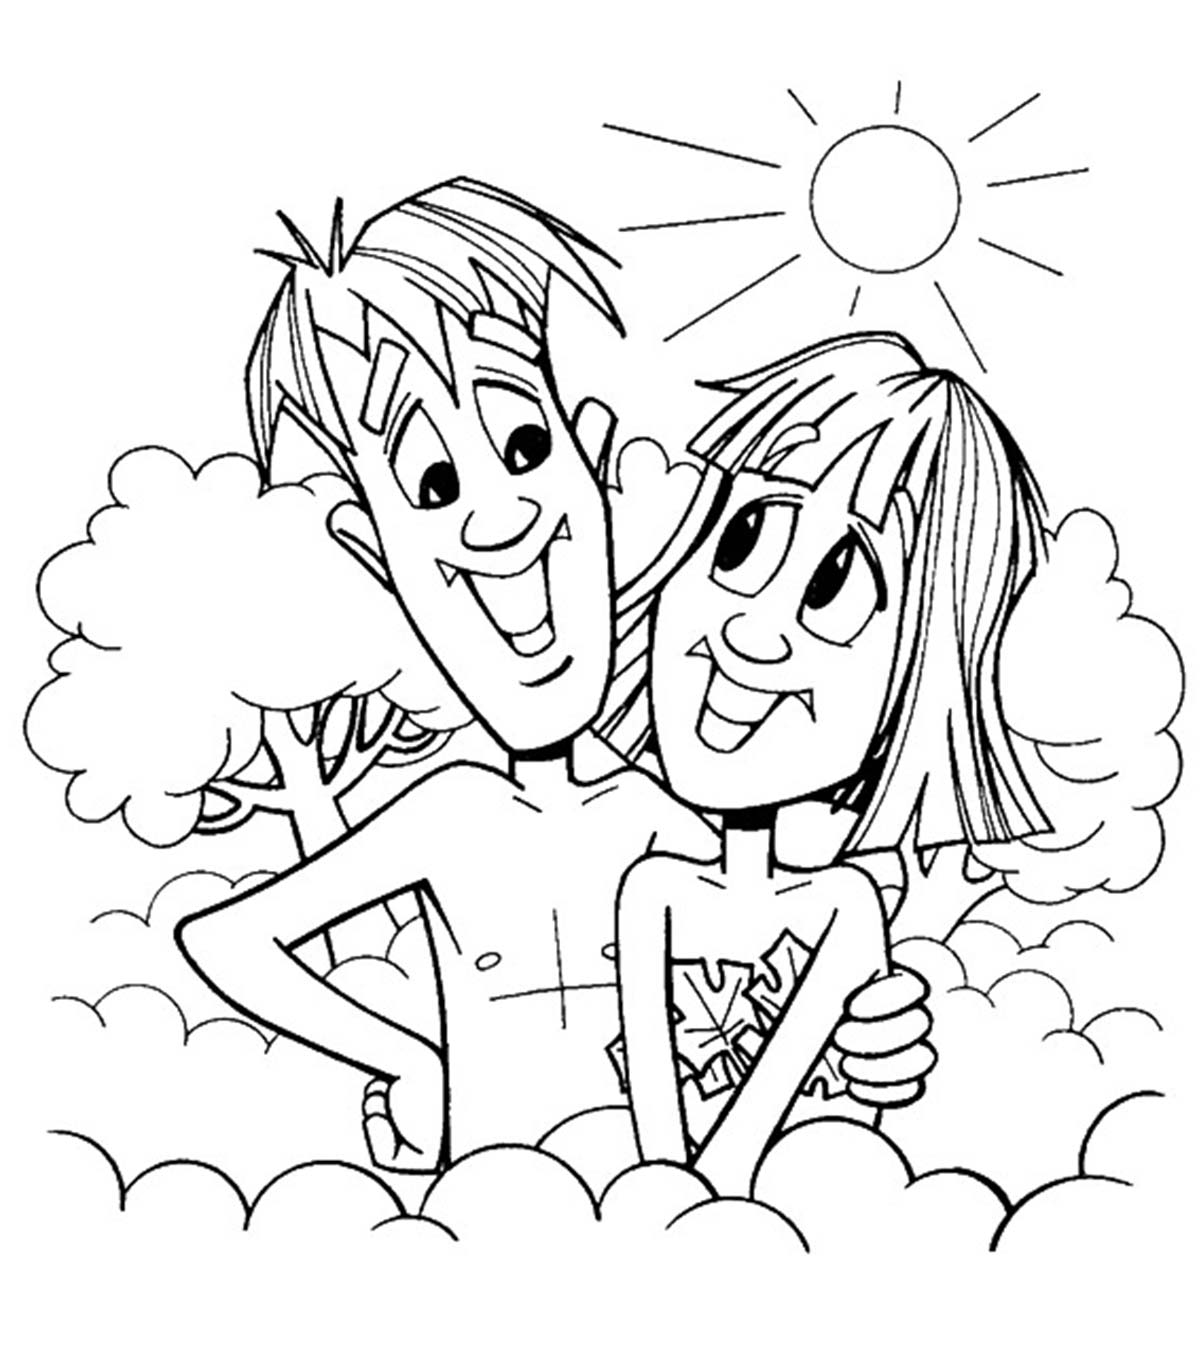 adam and eve coloring page adam and eve coloring pages to print free coloring sheets eve adam coloring and page